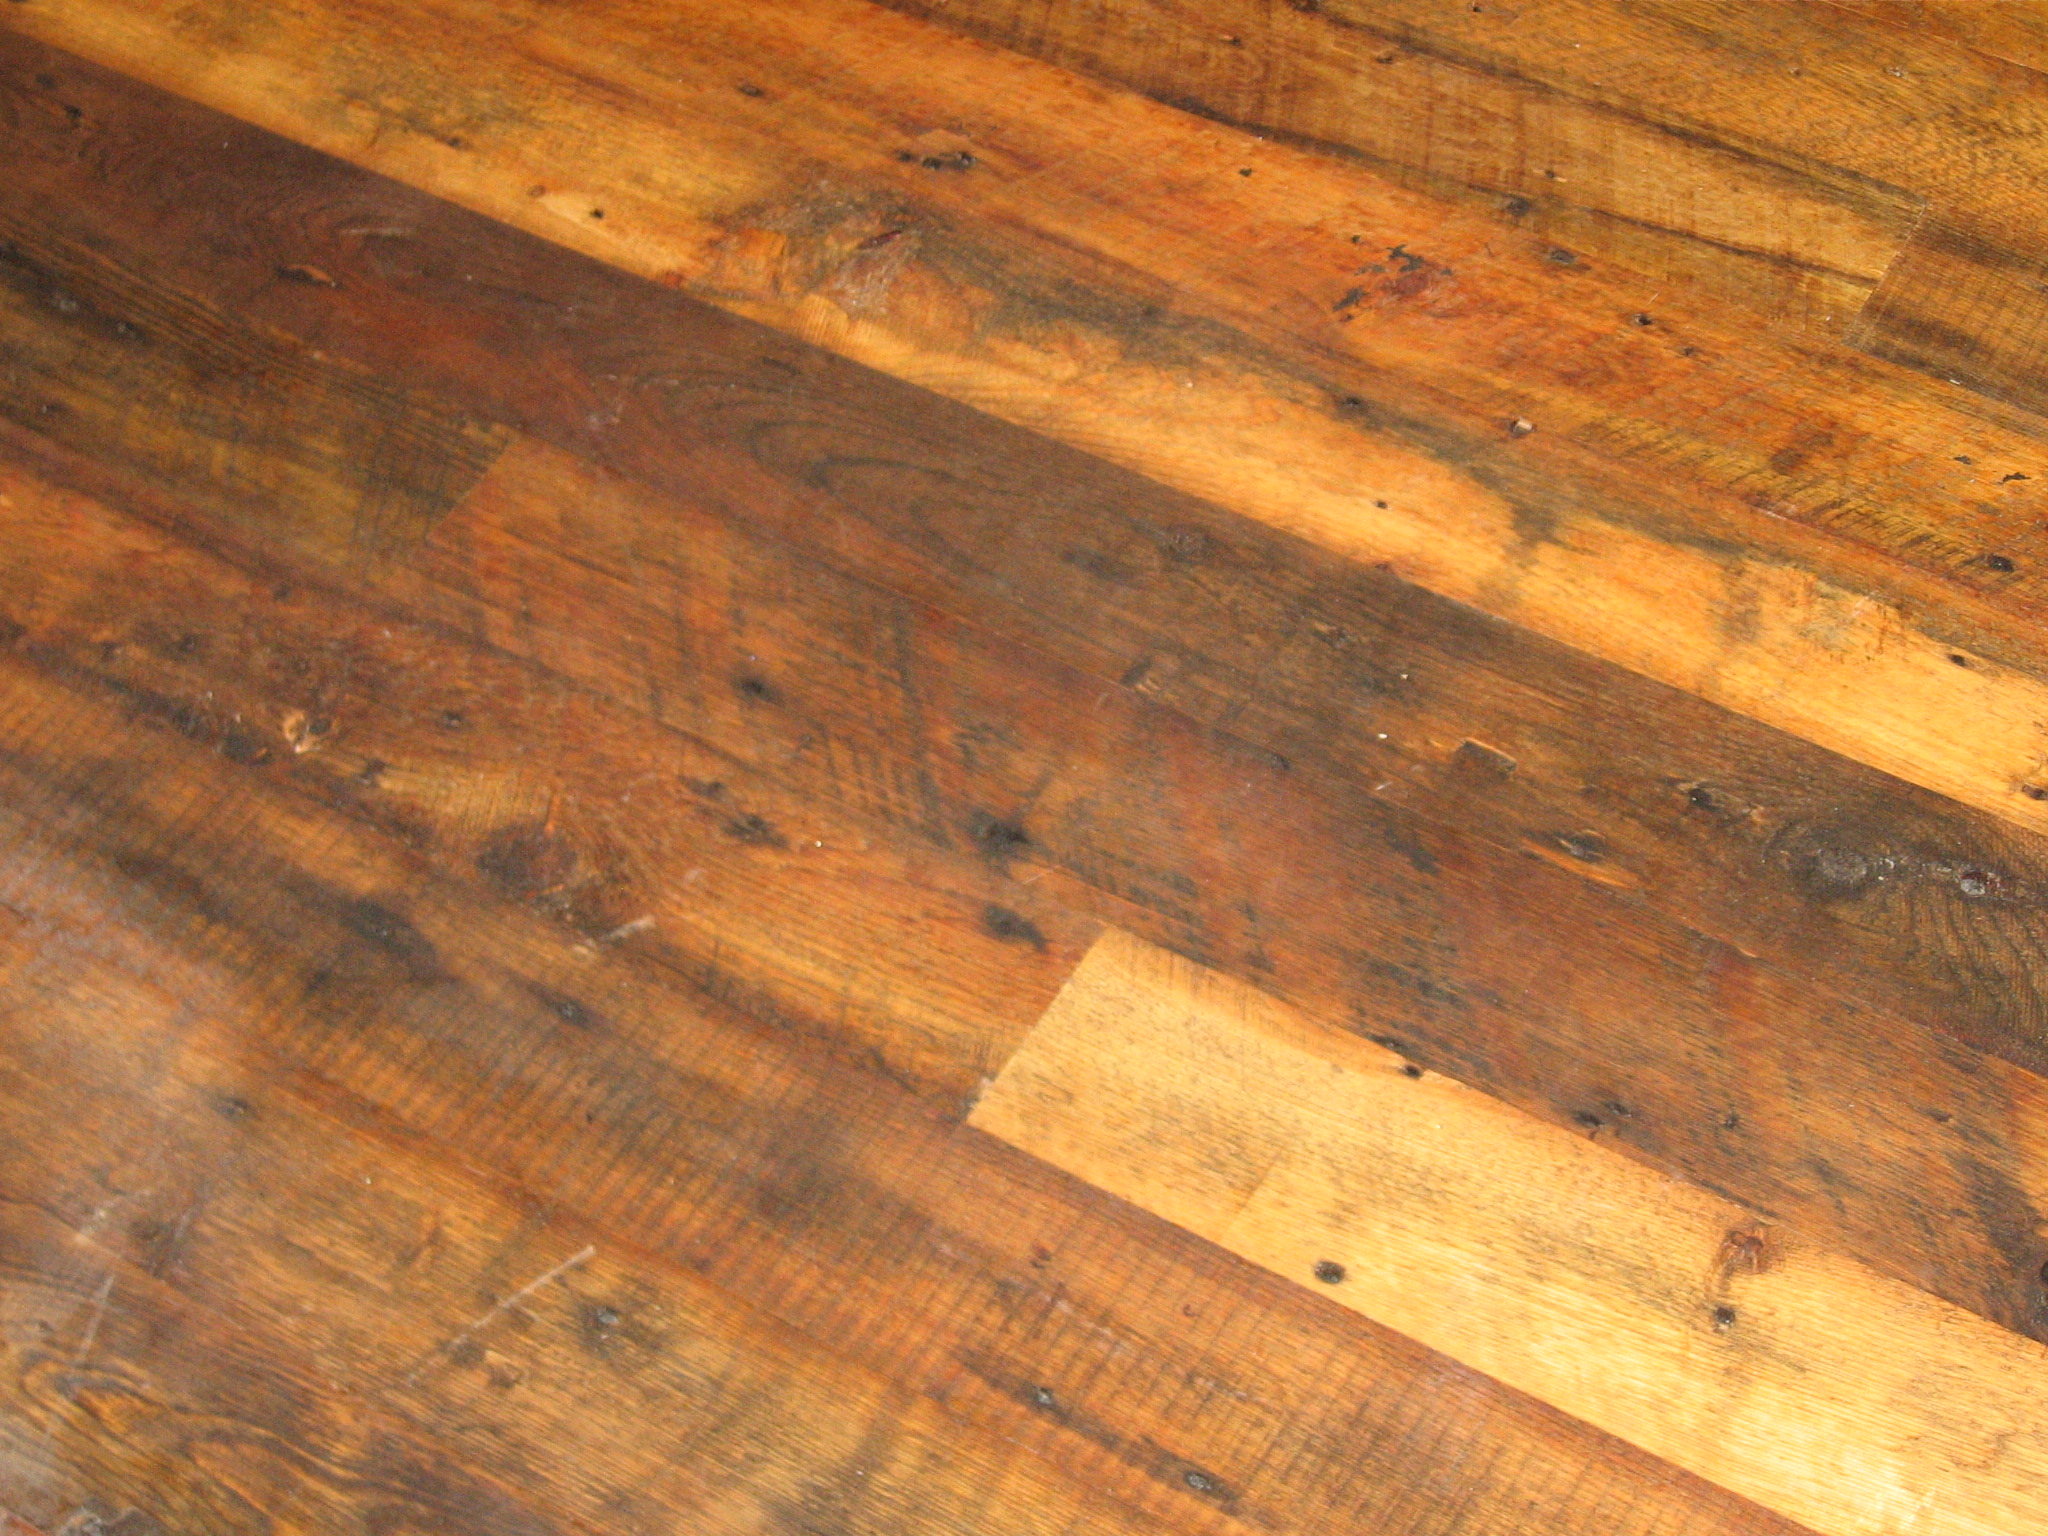 Reclaimed Hardwood Flooring Of Hardwood Floor Patterns And Reclaimed Hardwoods